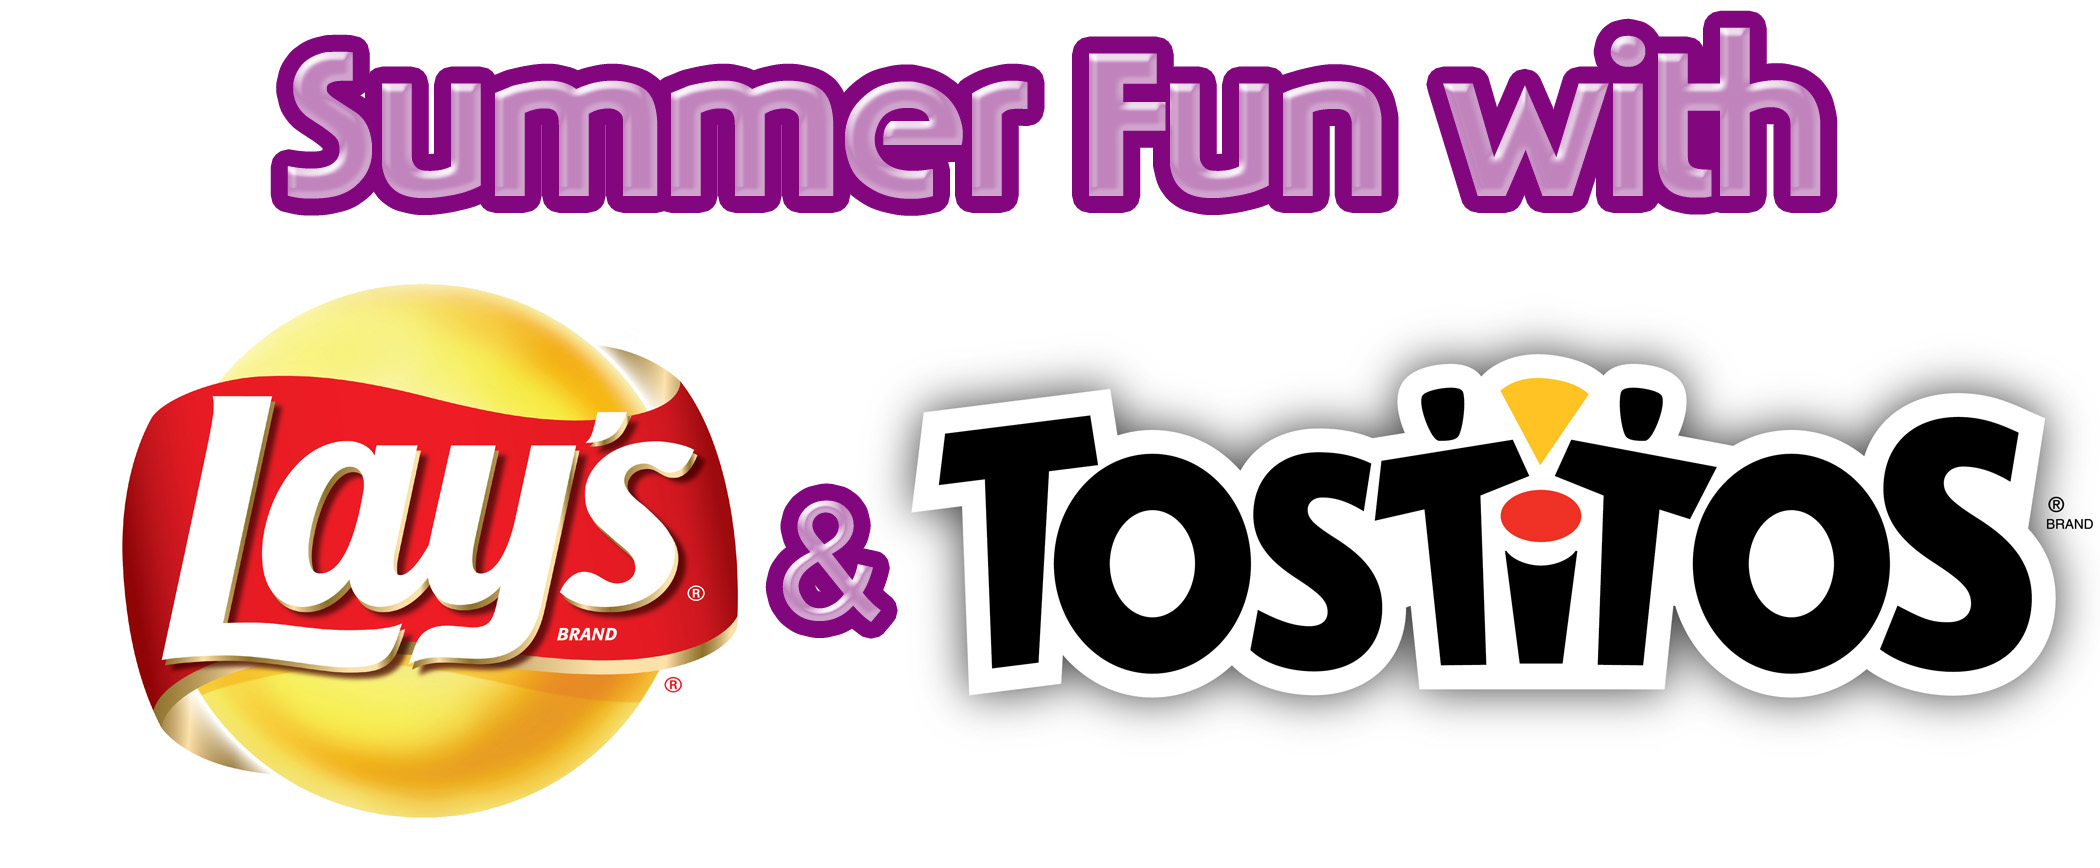 Frito-Lay's – Perfect Snack for Any Summer Occasion #Giveaway